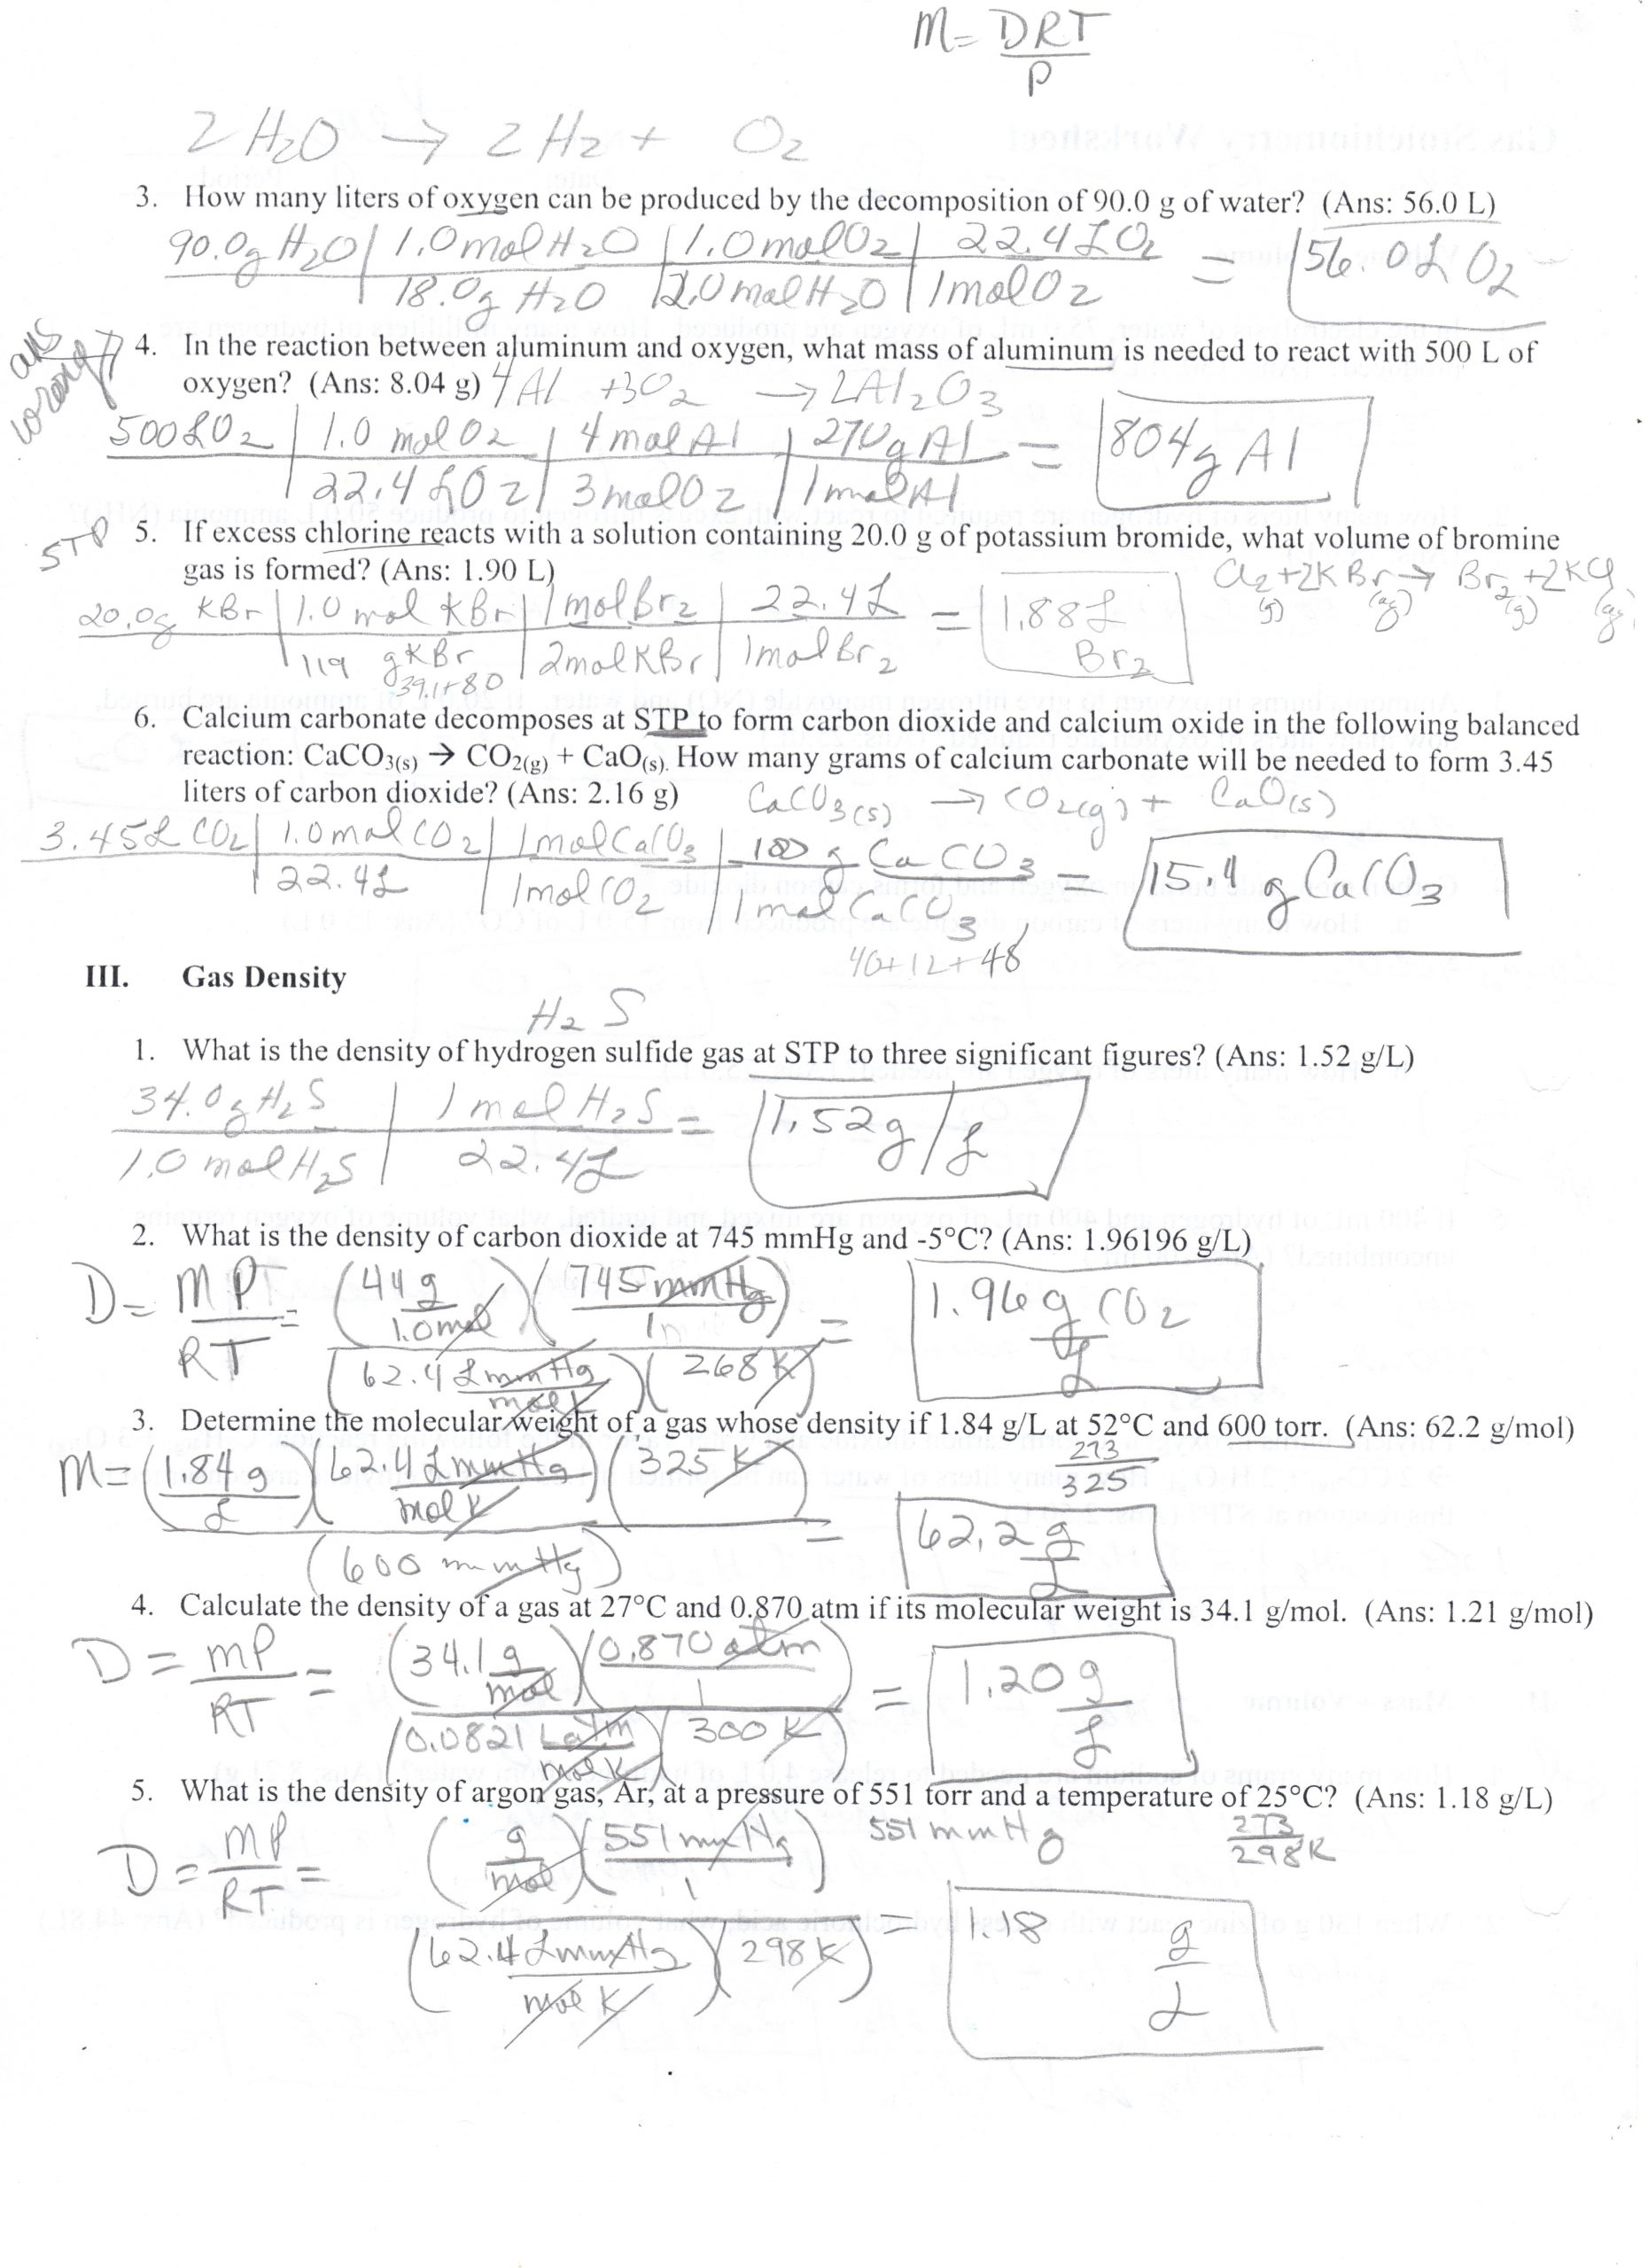 Solutions Acids and Bases Worksheet Unit 4 solutions